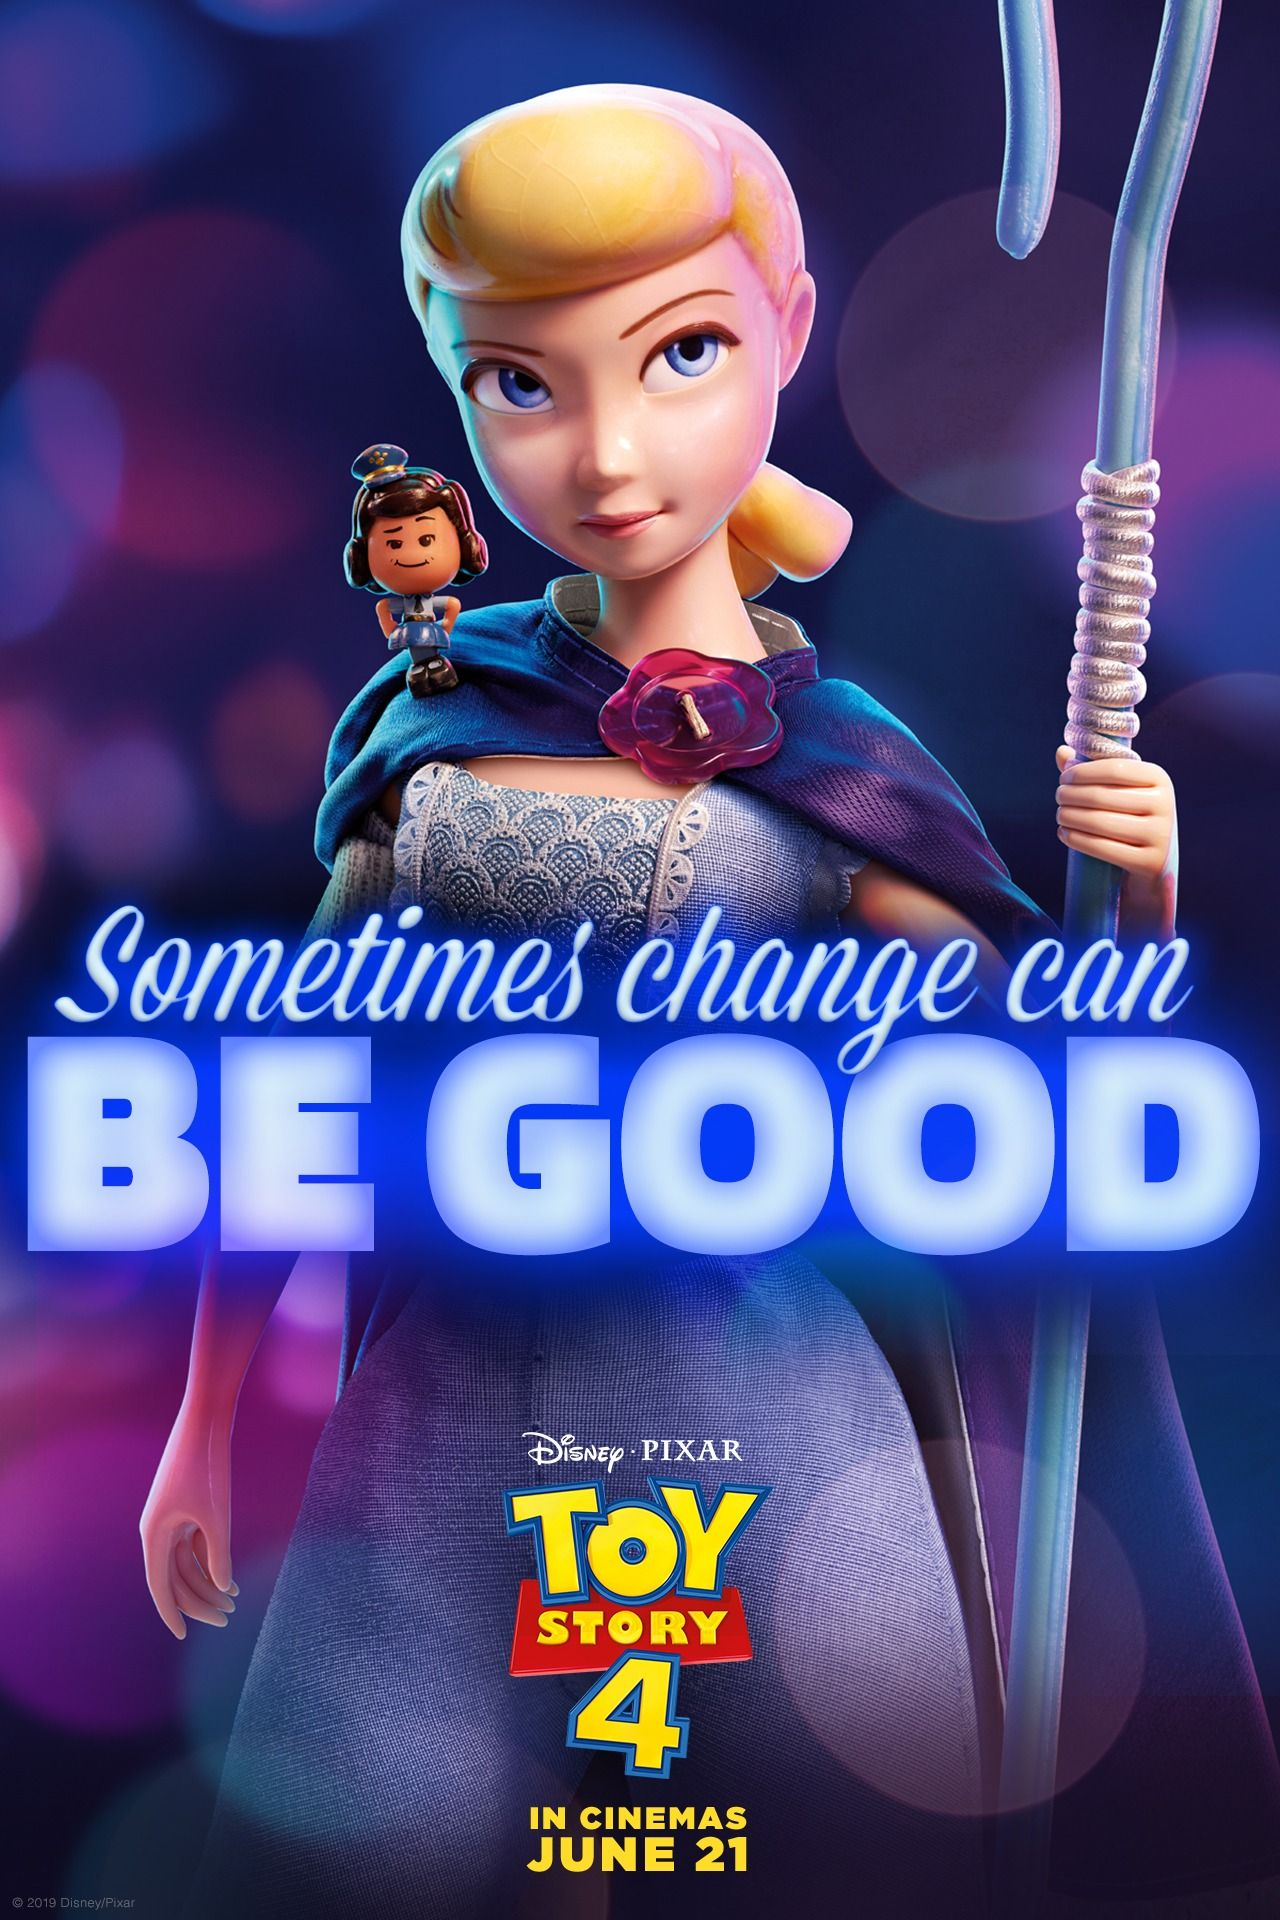 Saving one toy at a time! Watch Bo Peep in Toy Story 4